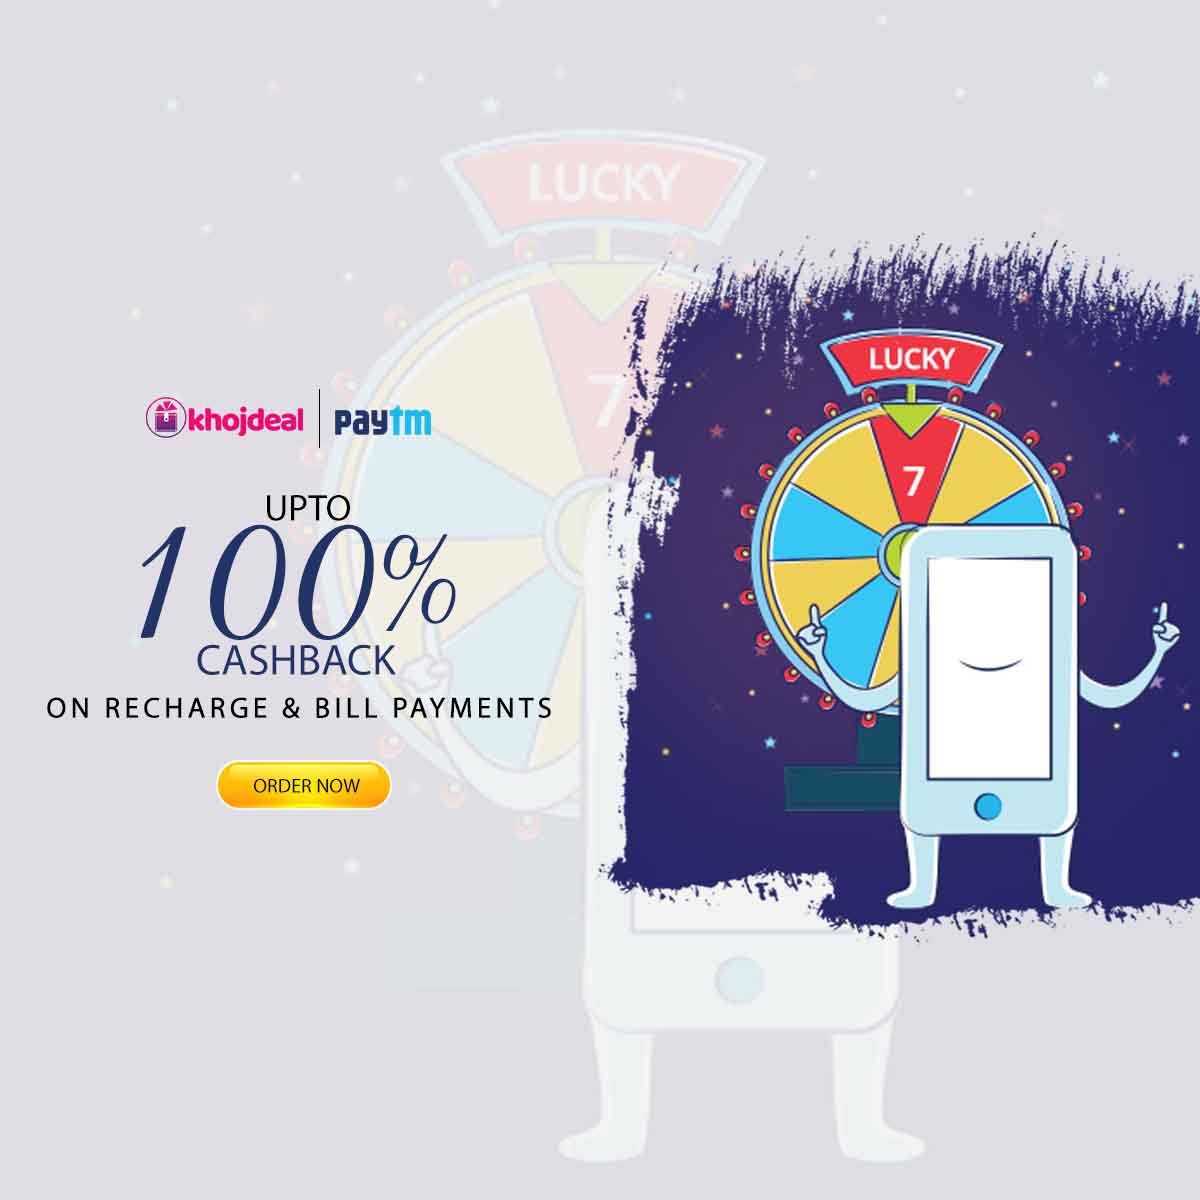 paytm first referral code